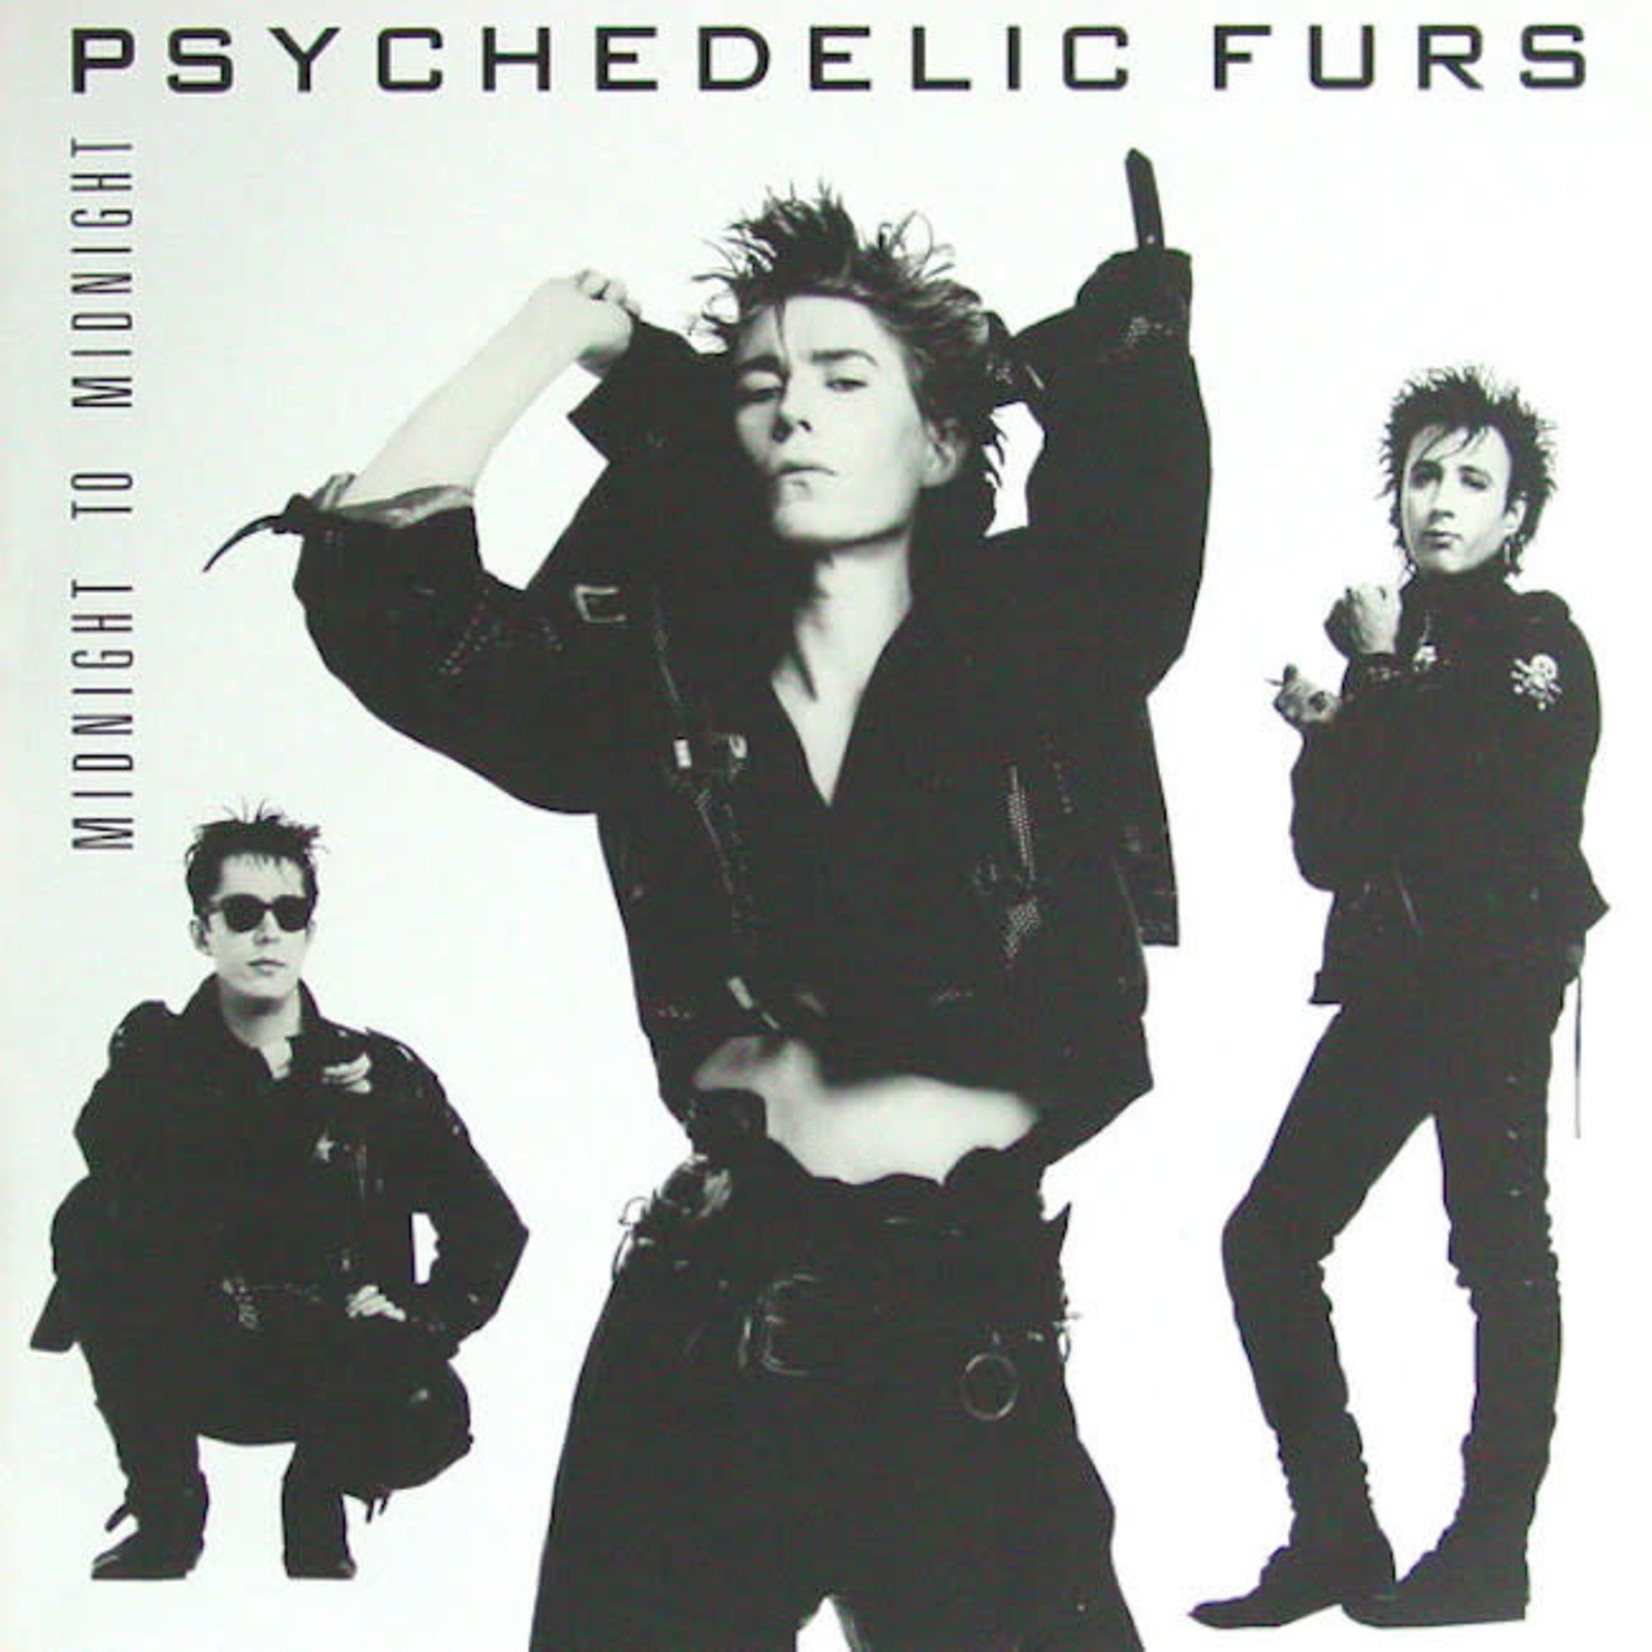 [Vintage] Psychedelic Furs: Midnight to Midnight